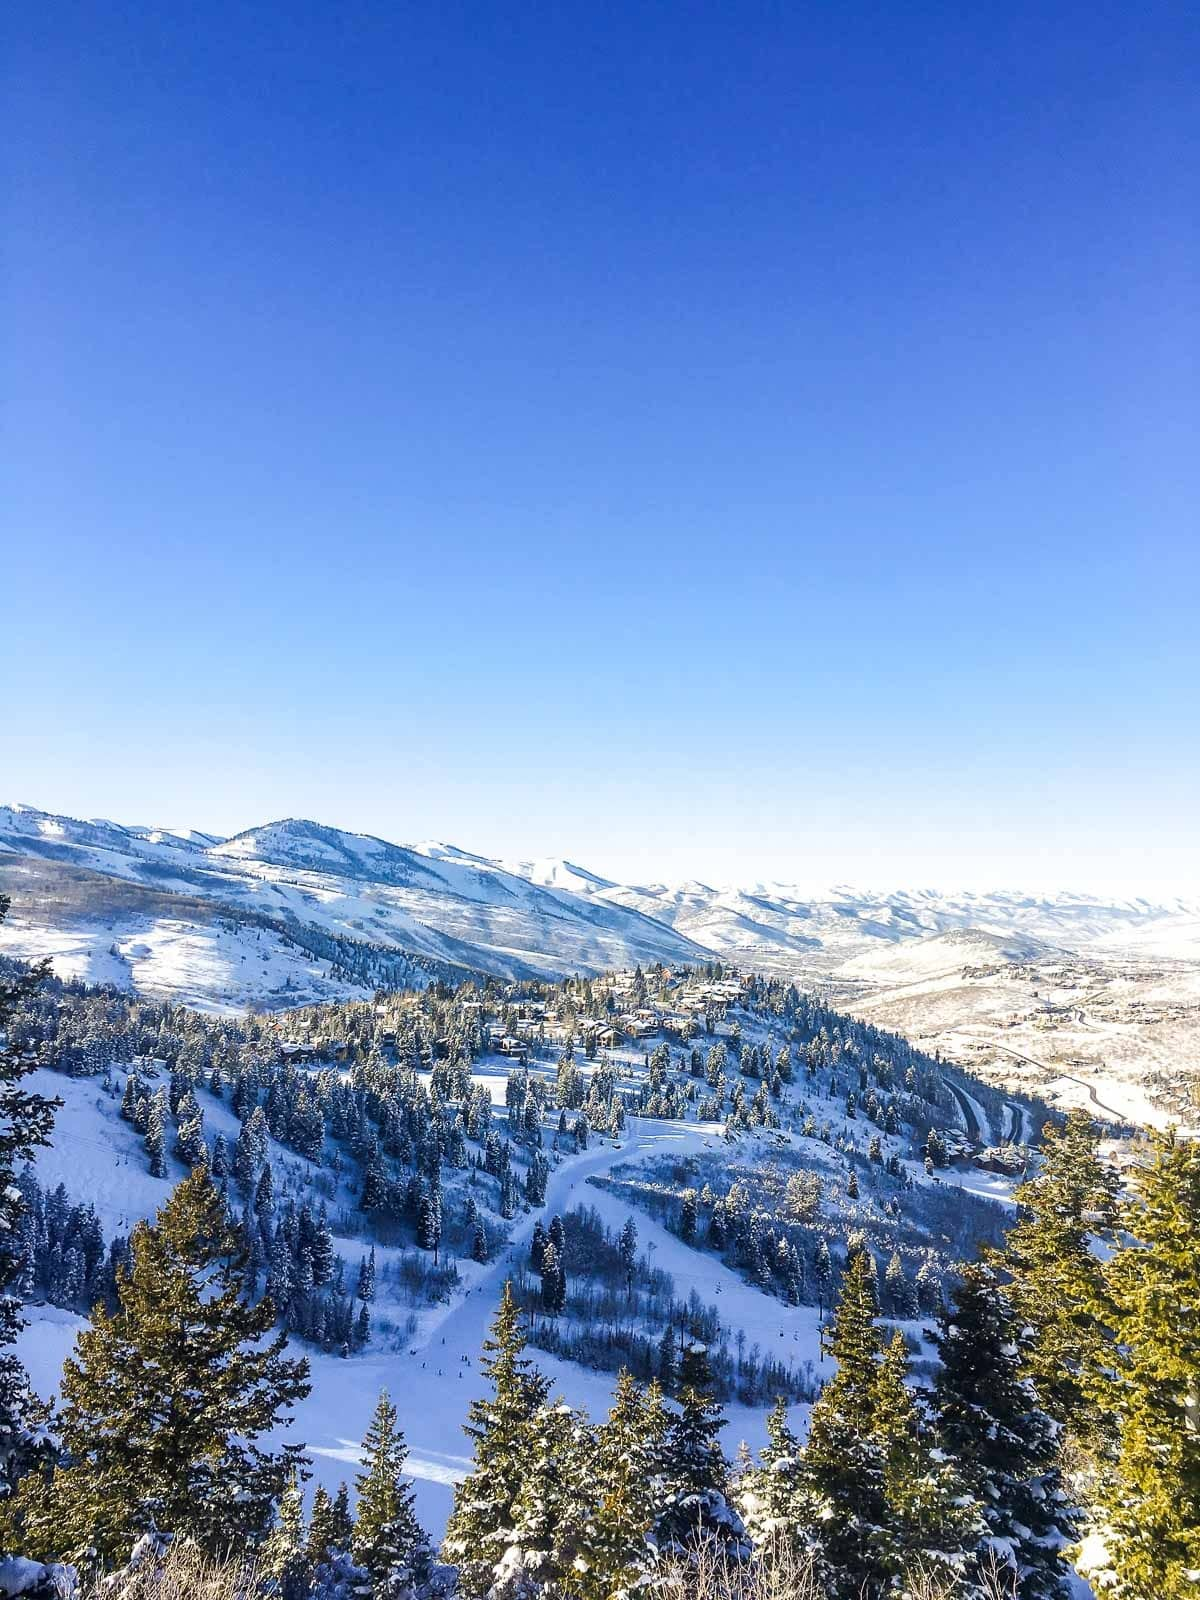 View from a mountain in Deer Valley